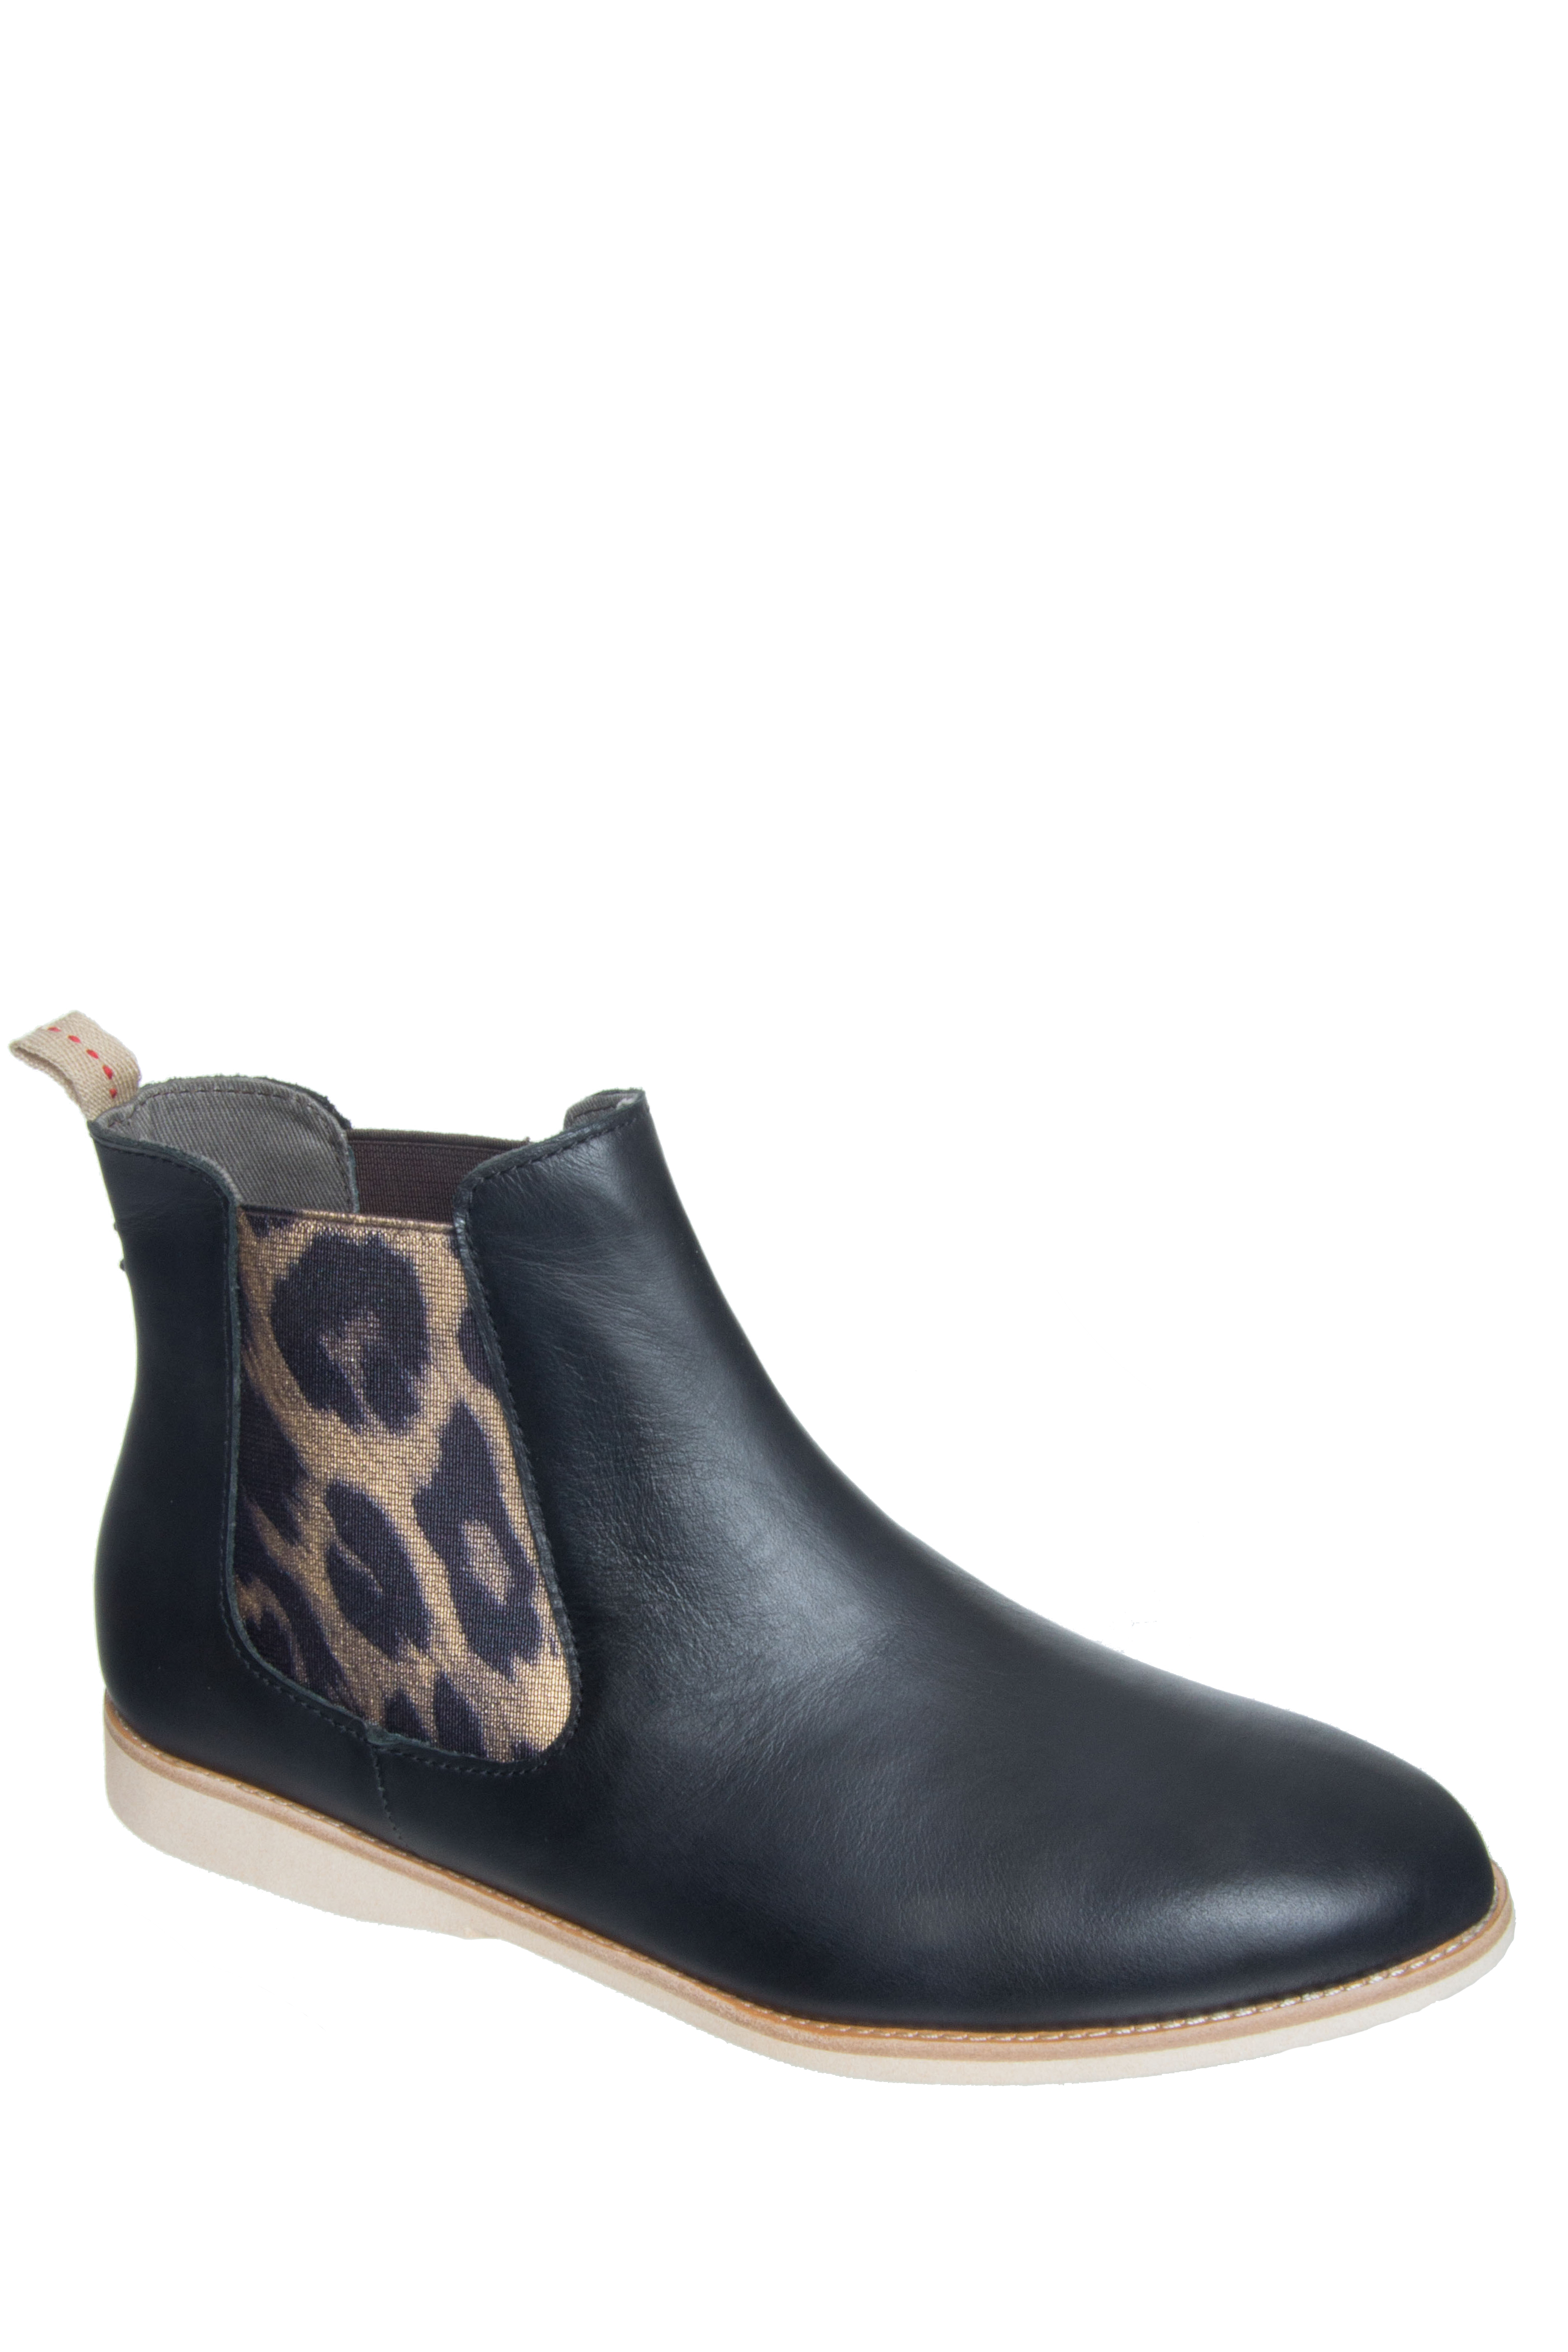 Rollie Nation Unisex Chelsea Low Heel Boots - Black / Gold Leopard